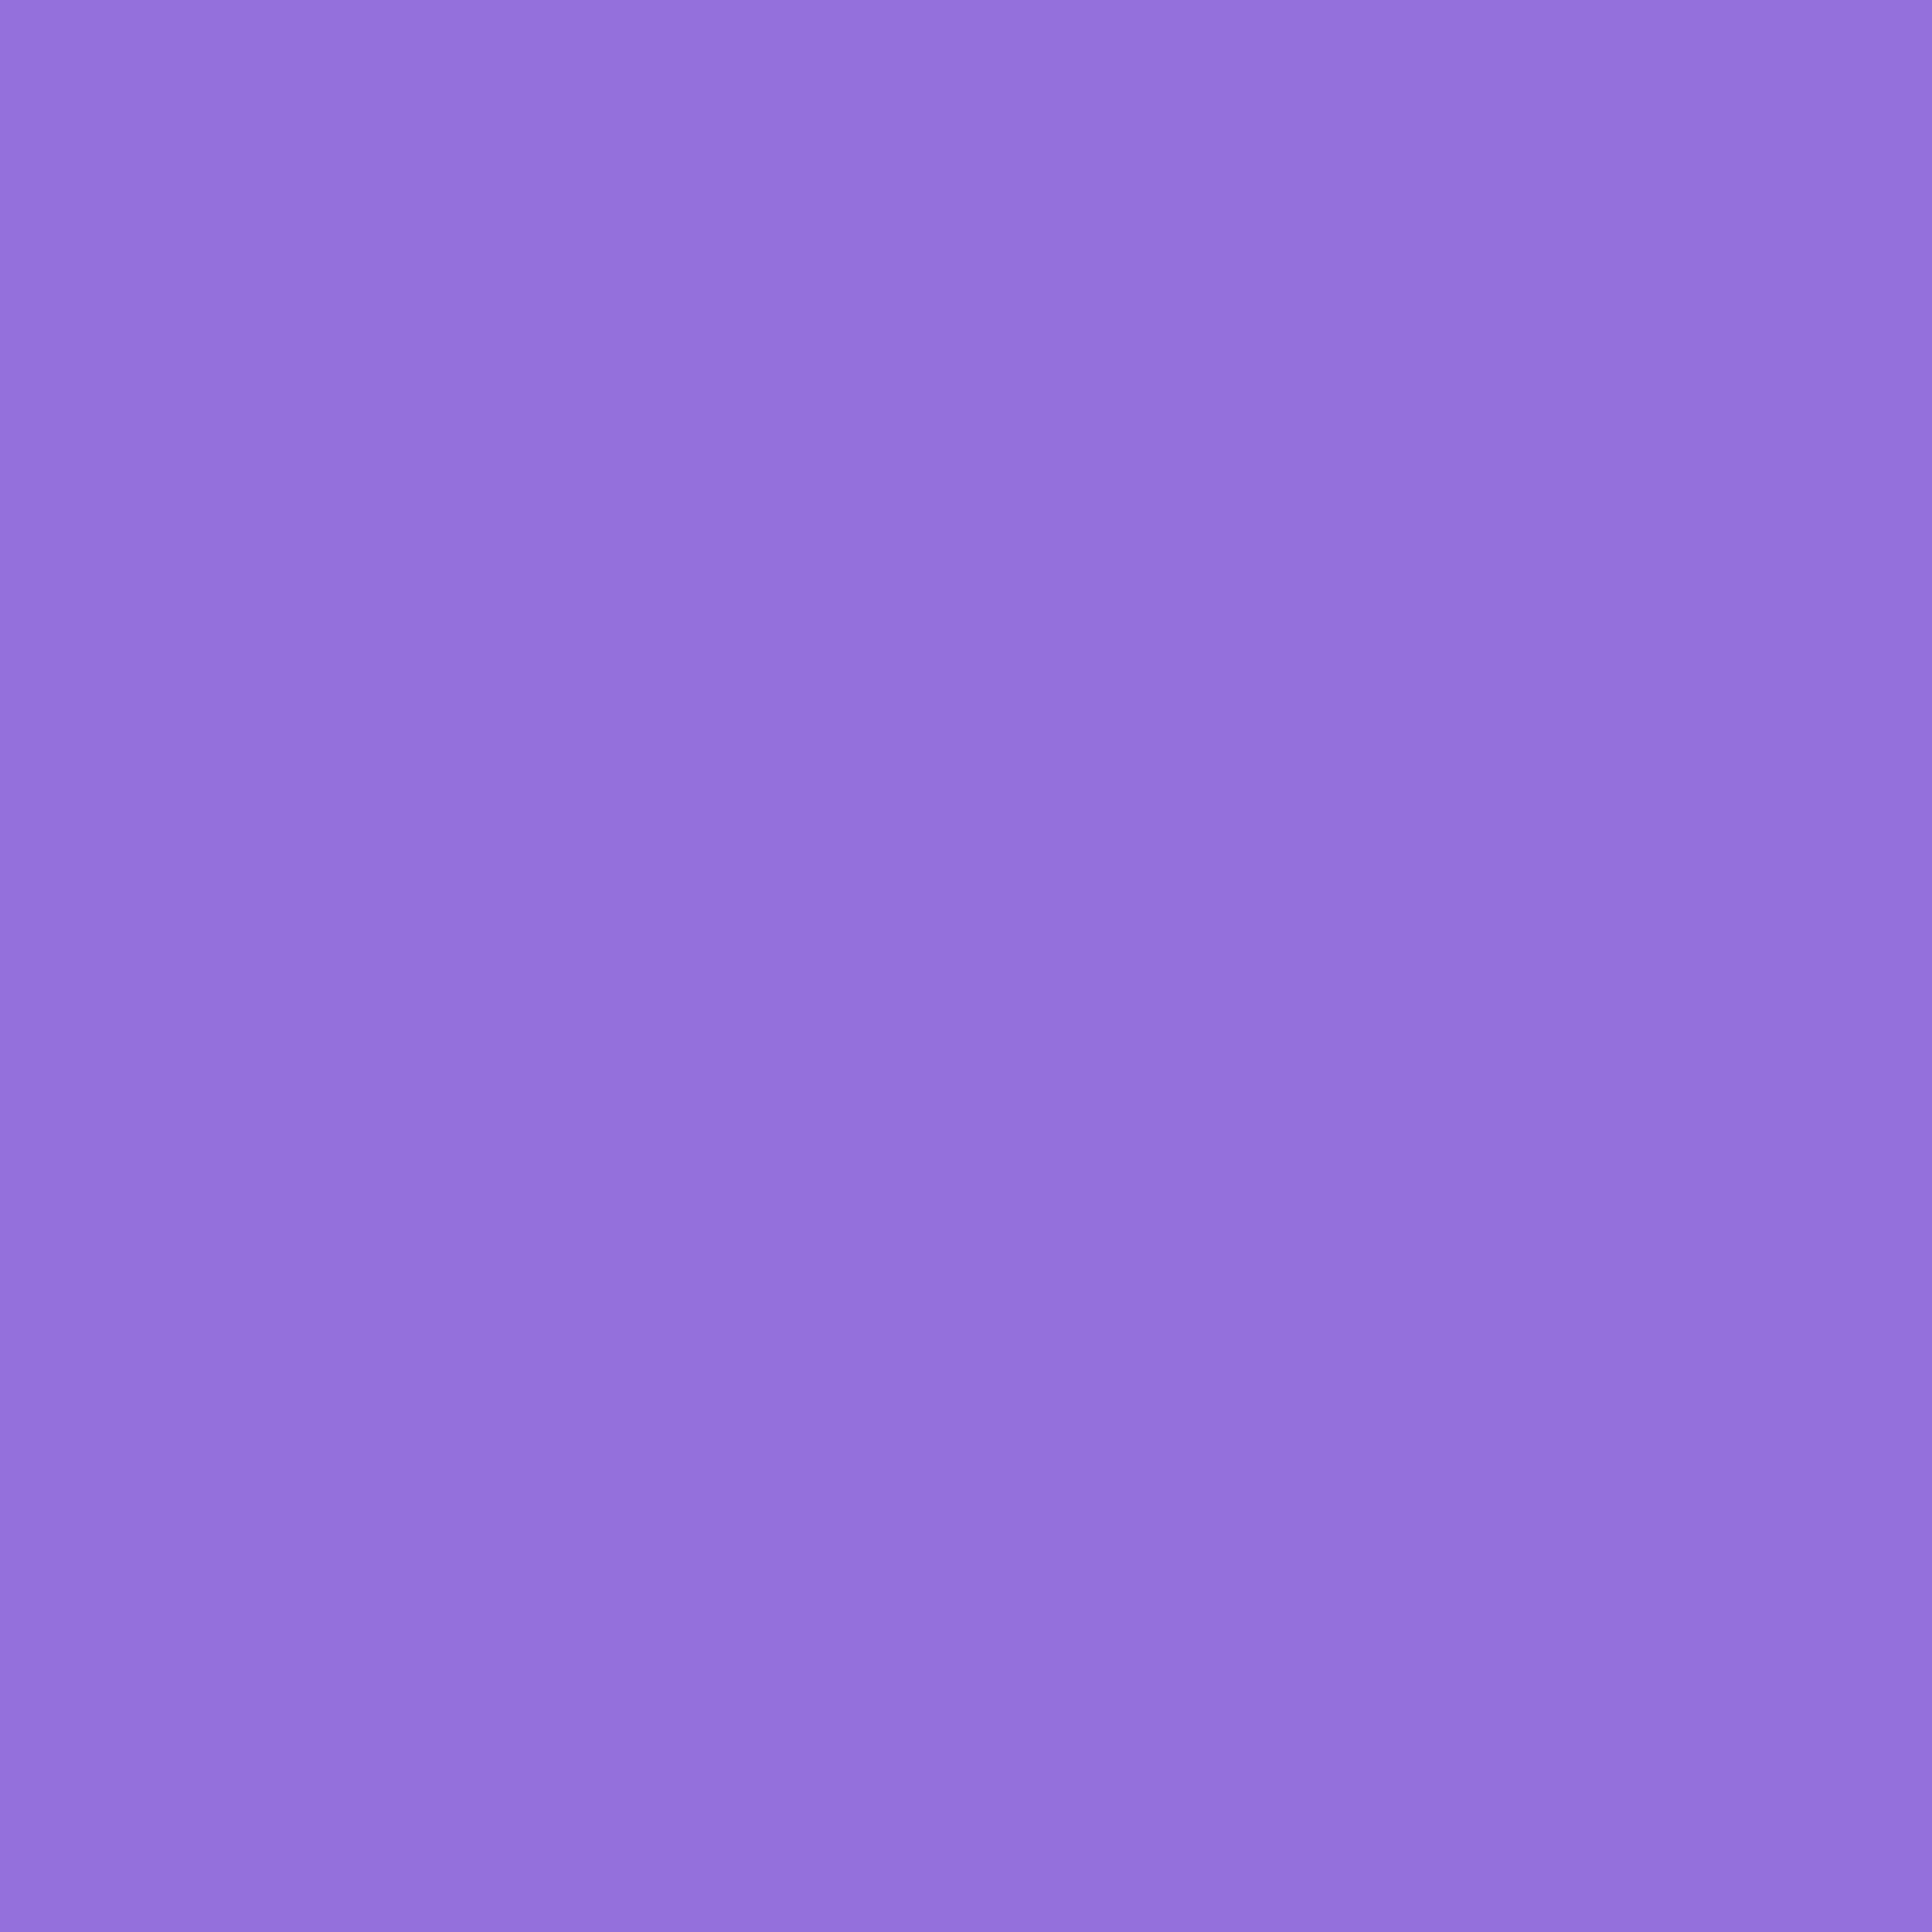 3600x3600 Medium Purple Solid Color Background